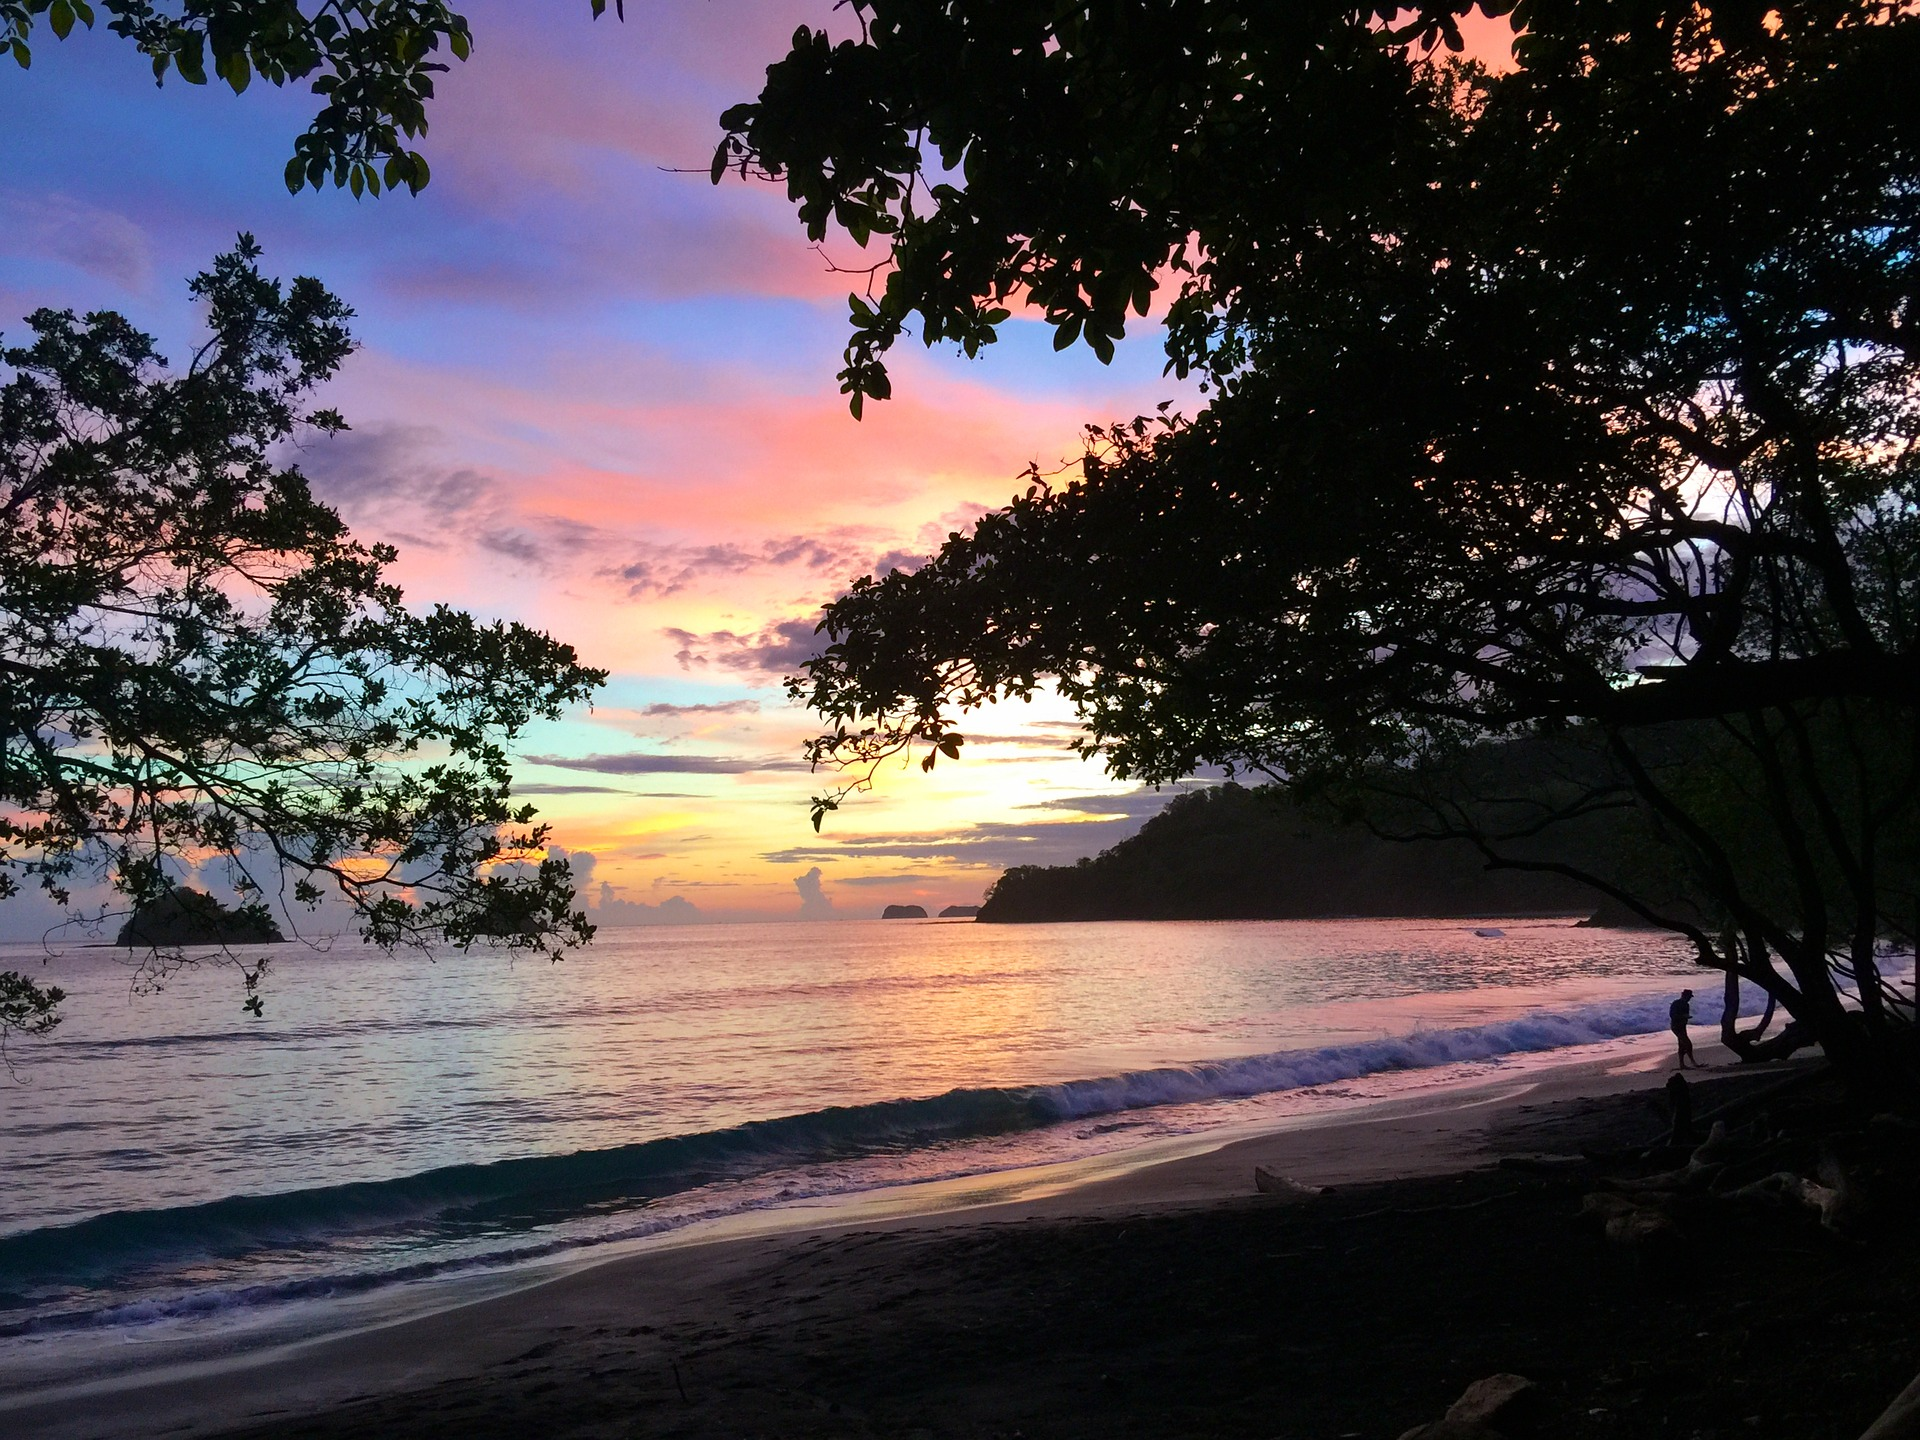 You are going to love Puerto Viejo, Costa Rica